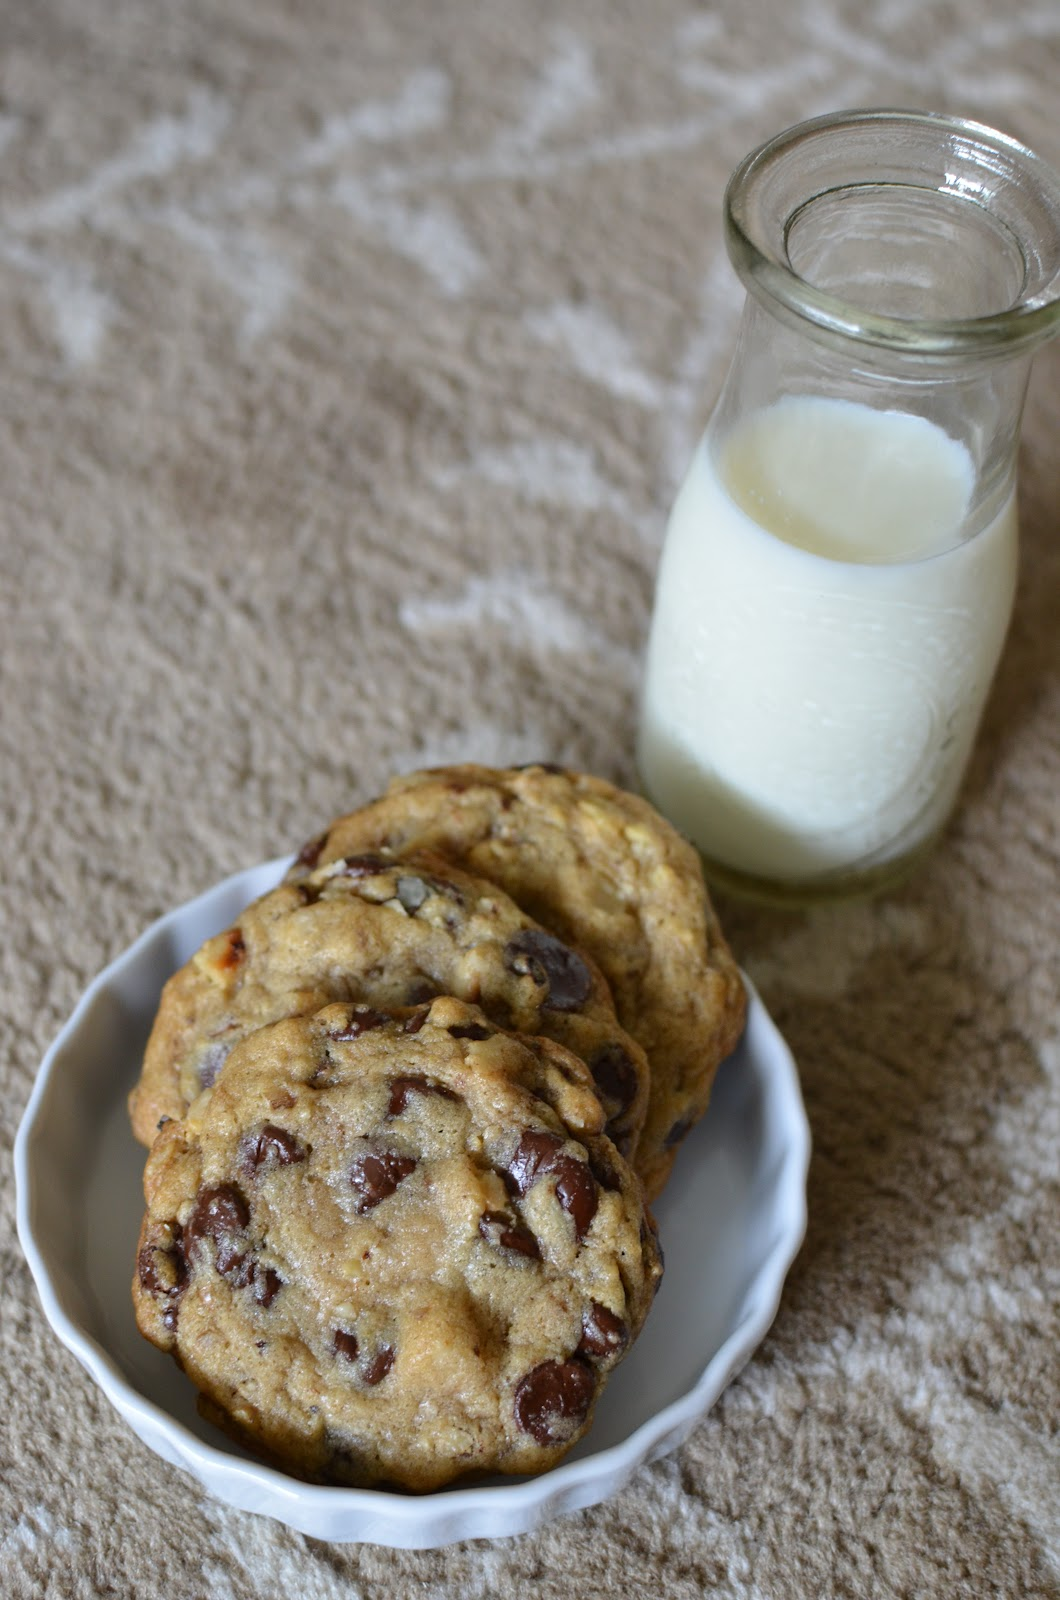 Playing with Flour: Chocolate chip cookies inspired by DoubleTree